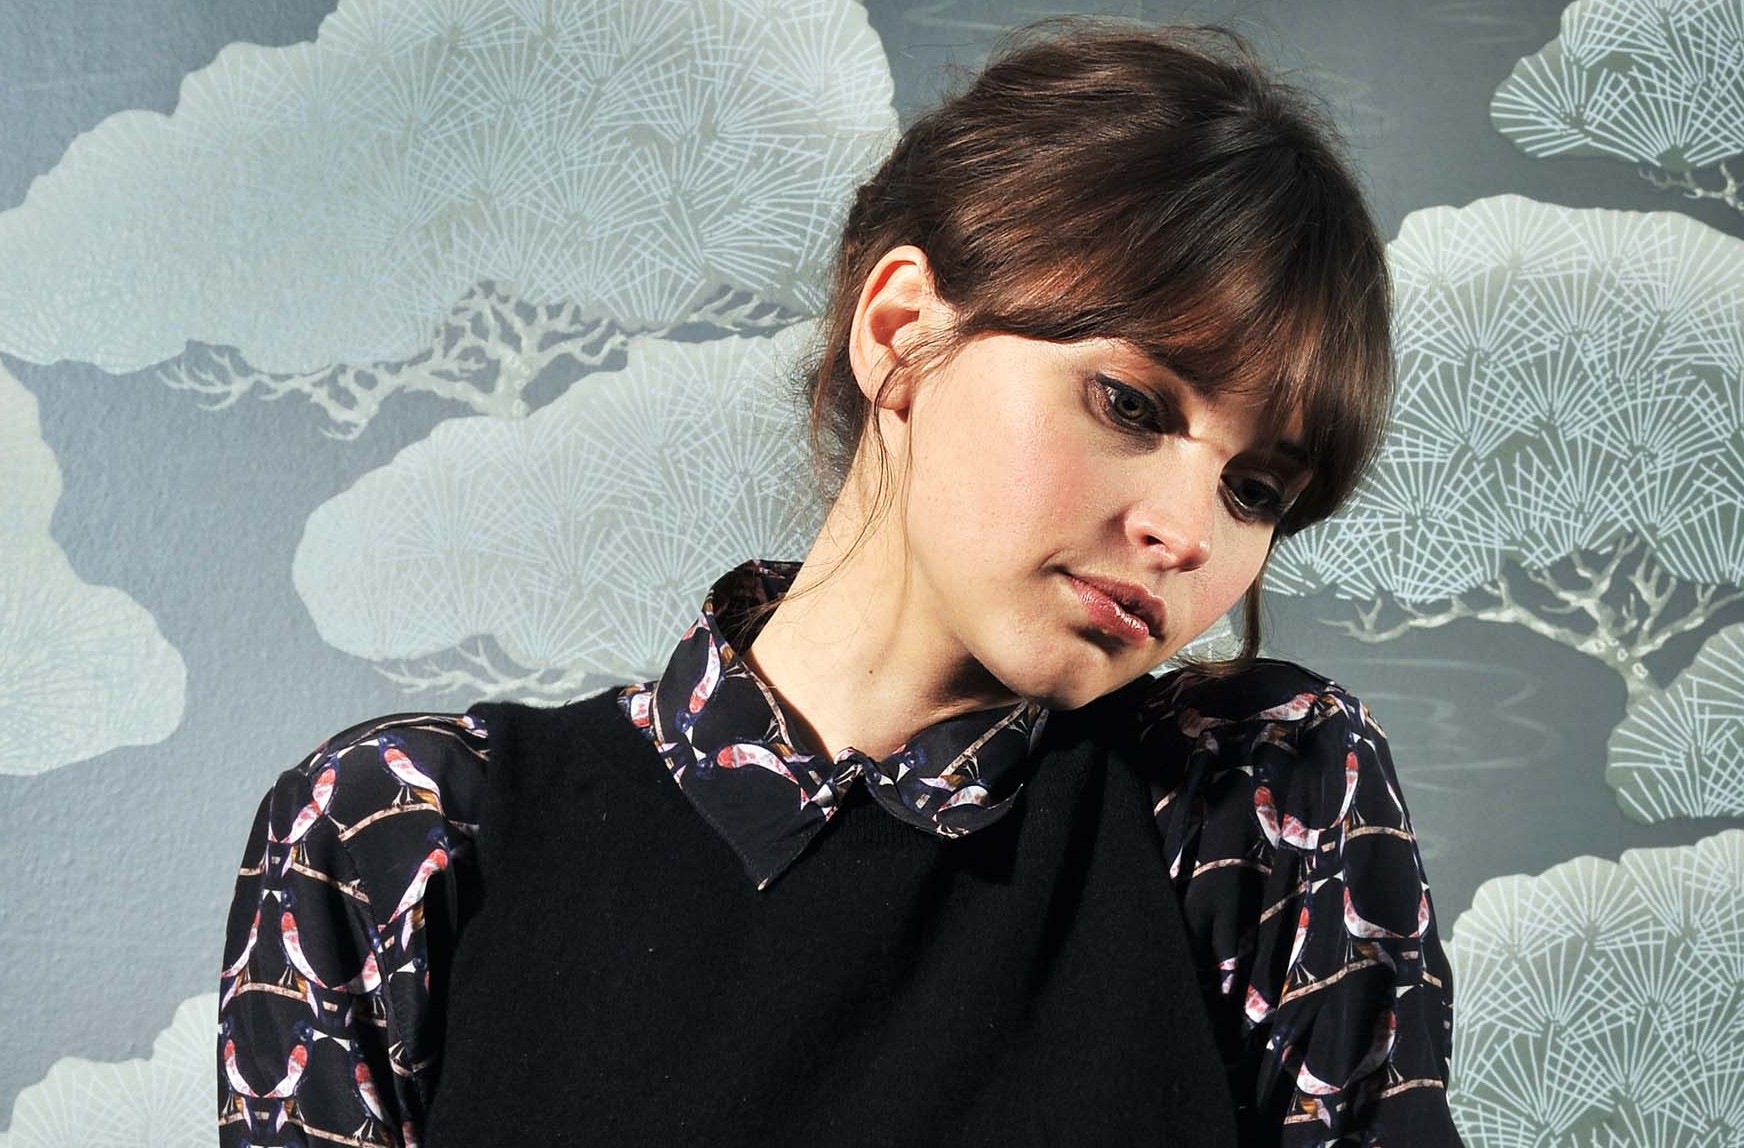 Felicity Jones has been tipped to play Anastasia Steele in Fifty Shades Of Grey (Picture: Daniel Lynch)